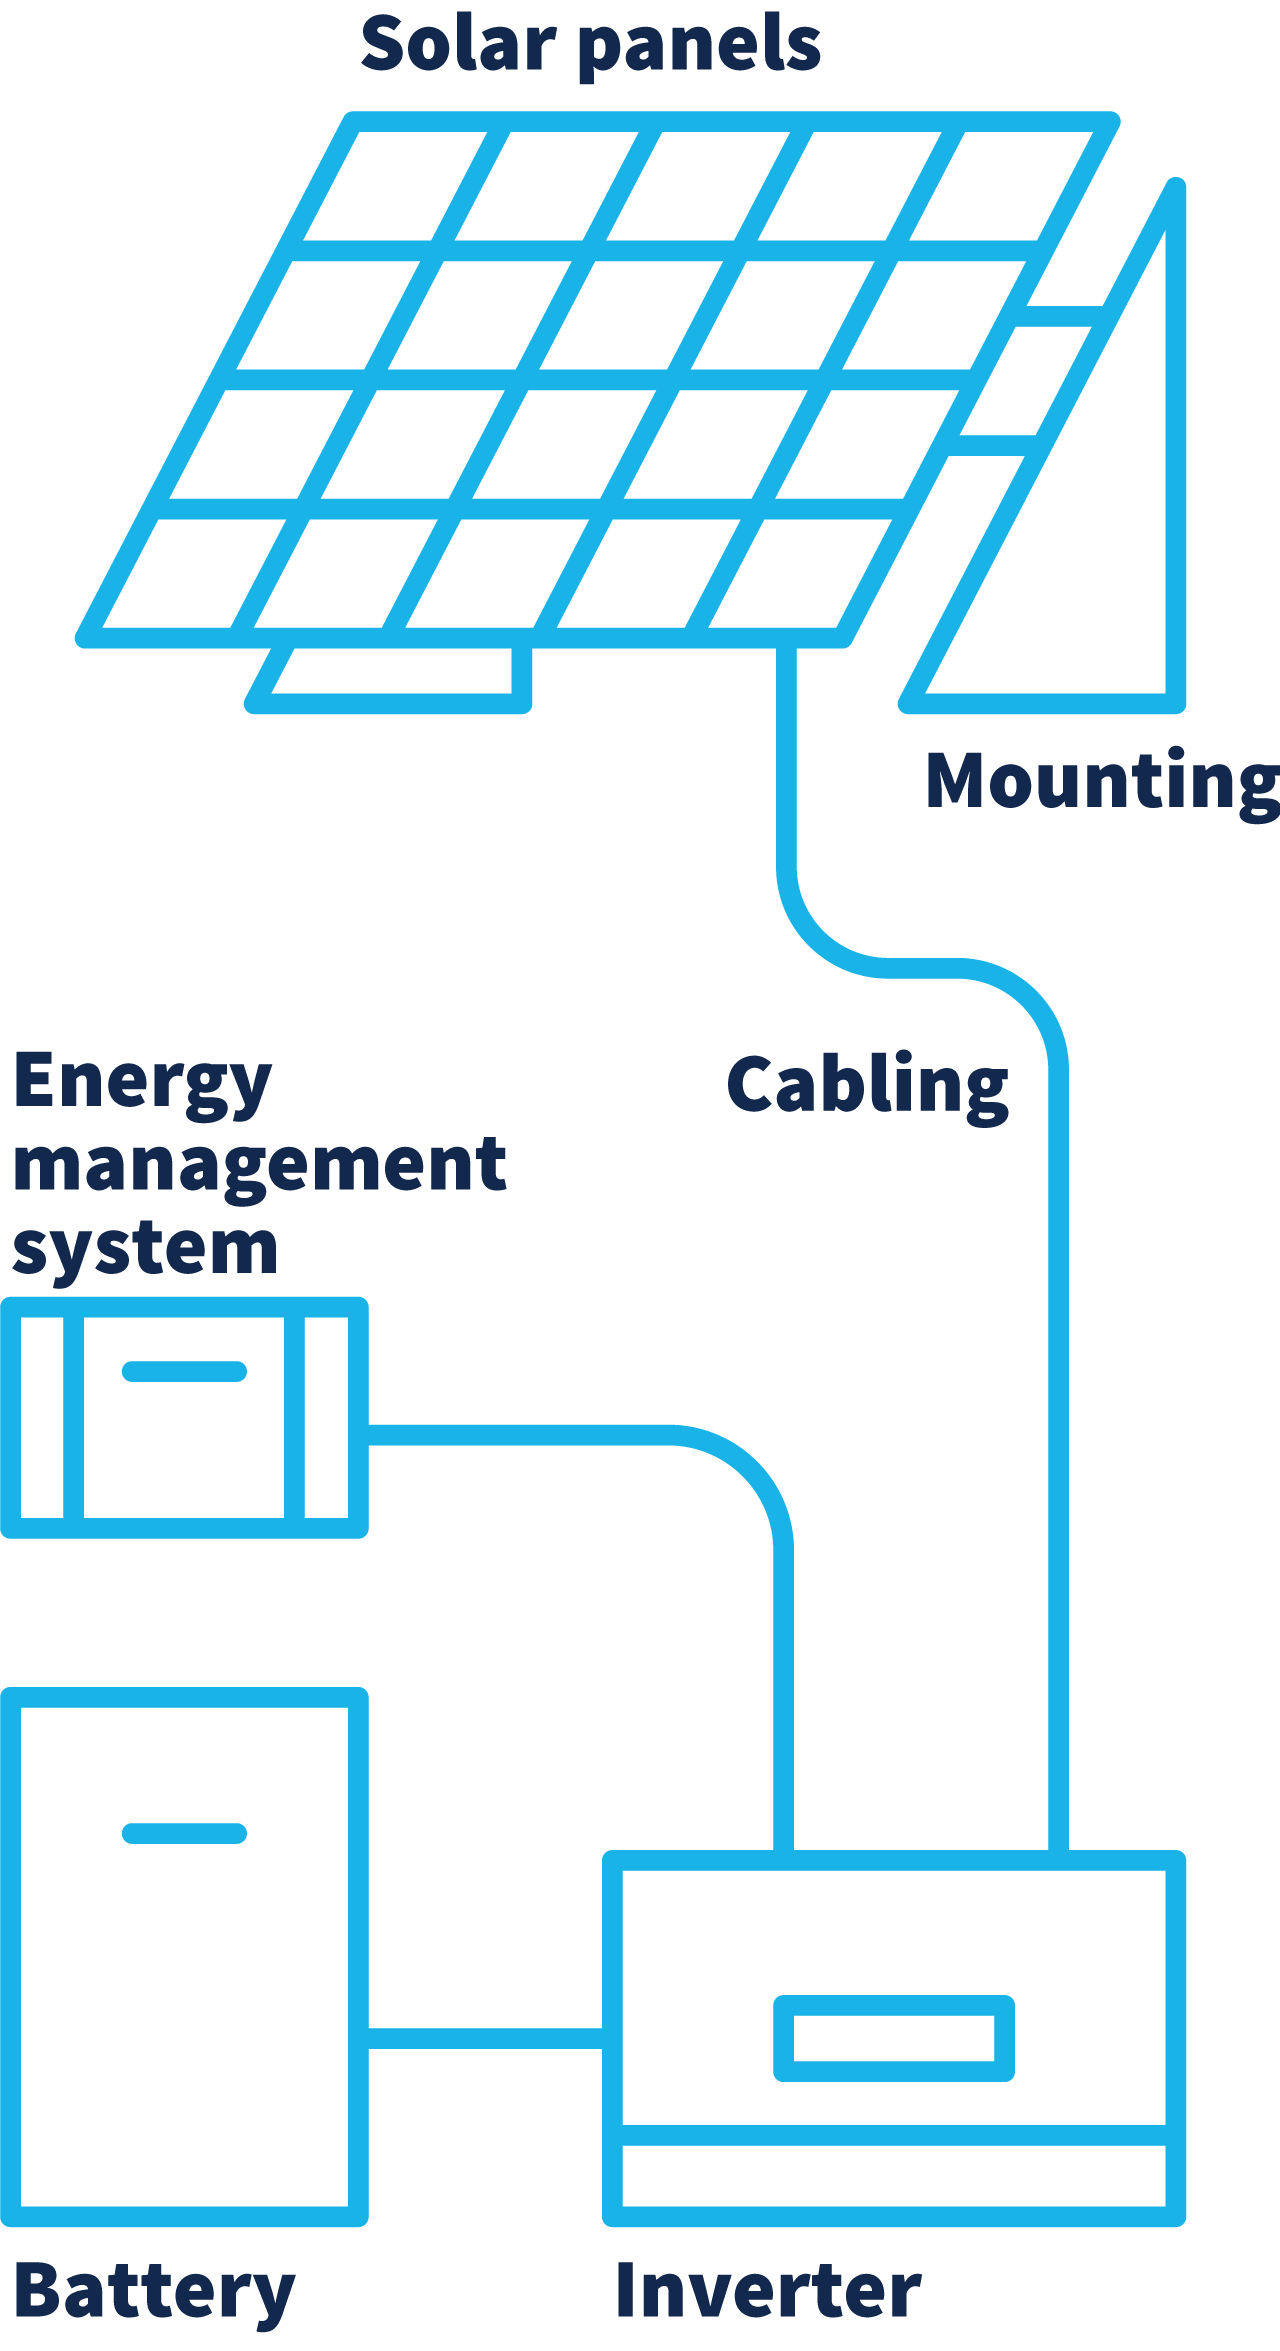 Is A Pv Solar System Right For You Panel Battery Diagram Depicts Mounted And Connected By Cabling To An Inverter This